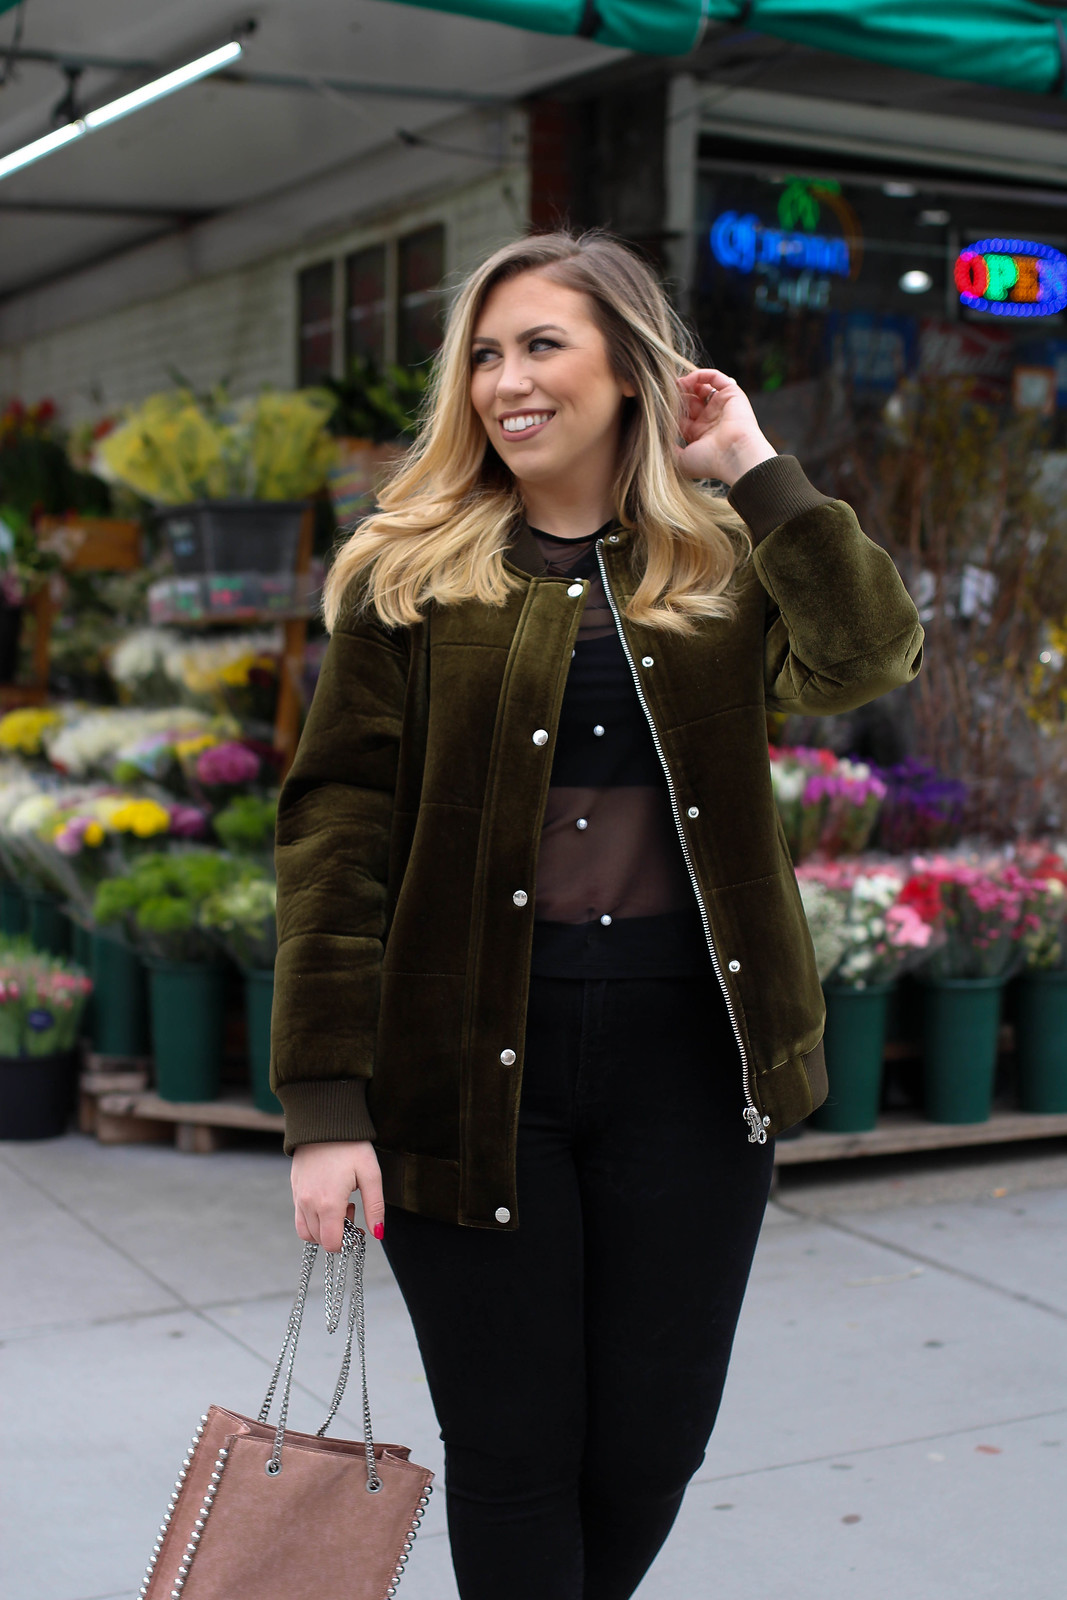 Green Velvet Members Only Bomber Jacket Early Spring New York Outfit Living After Midnite Jackie Giardina Style Blogger